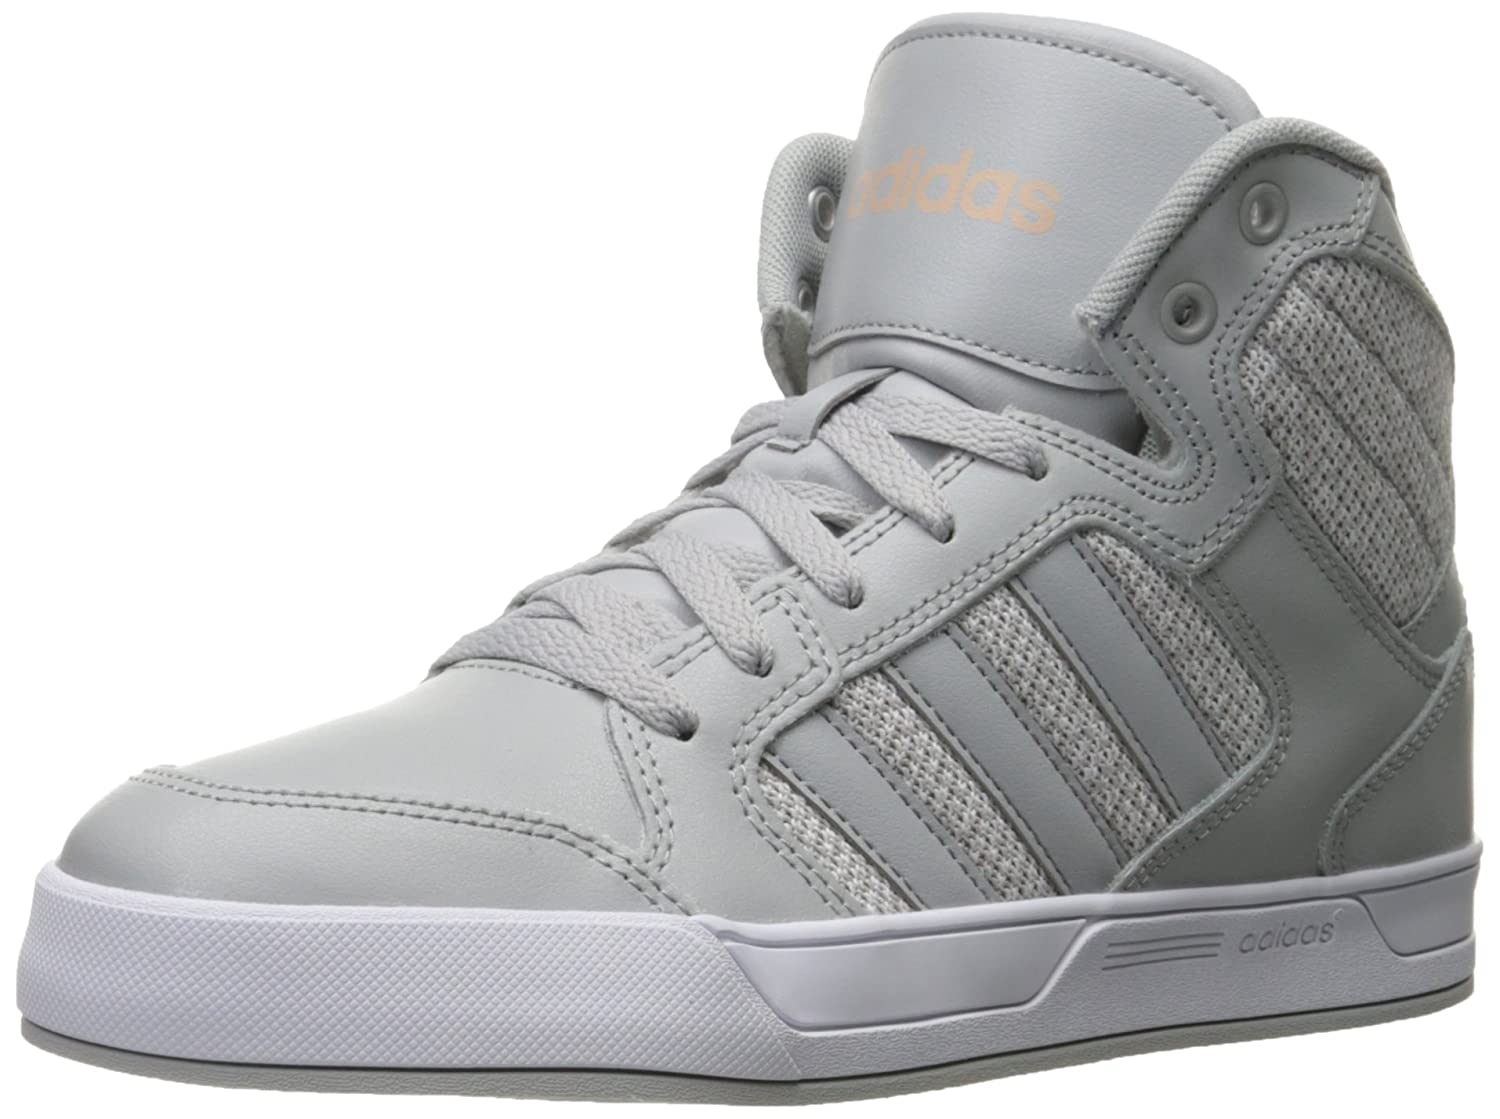 adidas Neo Women's Raleigh Mid W Casual Sneaker B01CT6Y30K 6.5 M US|Clear Onix/White